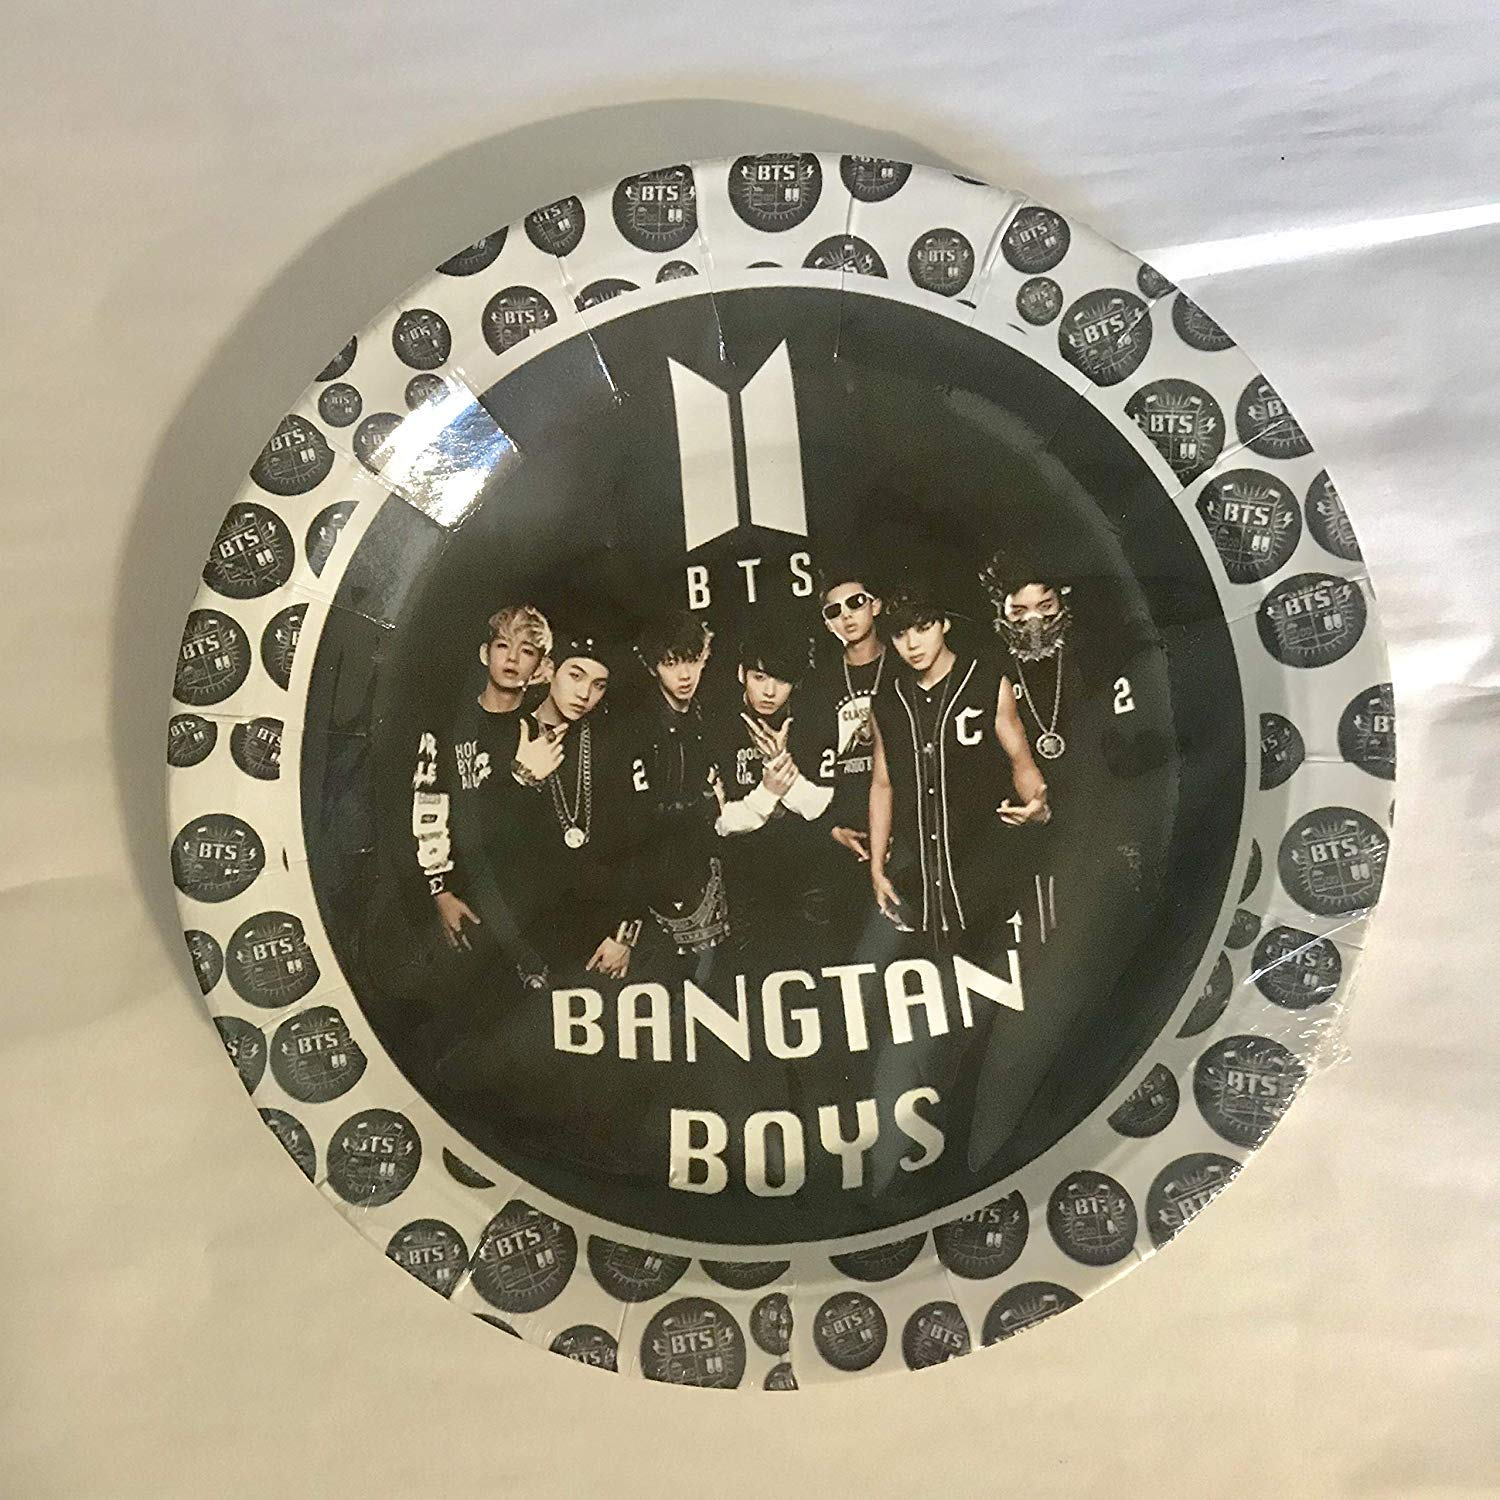 Amazon Com Bts Bangtan Boys Cake Topper 6 Inch Round Circle 2